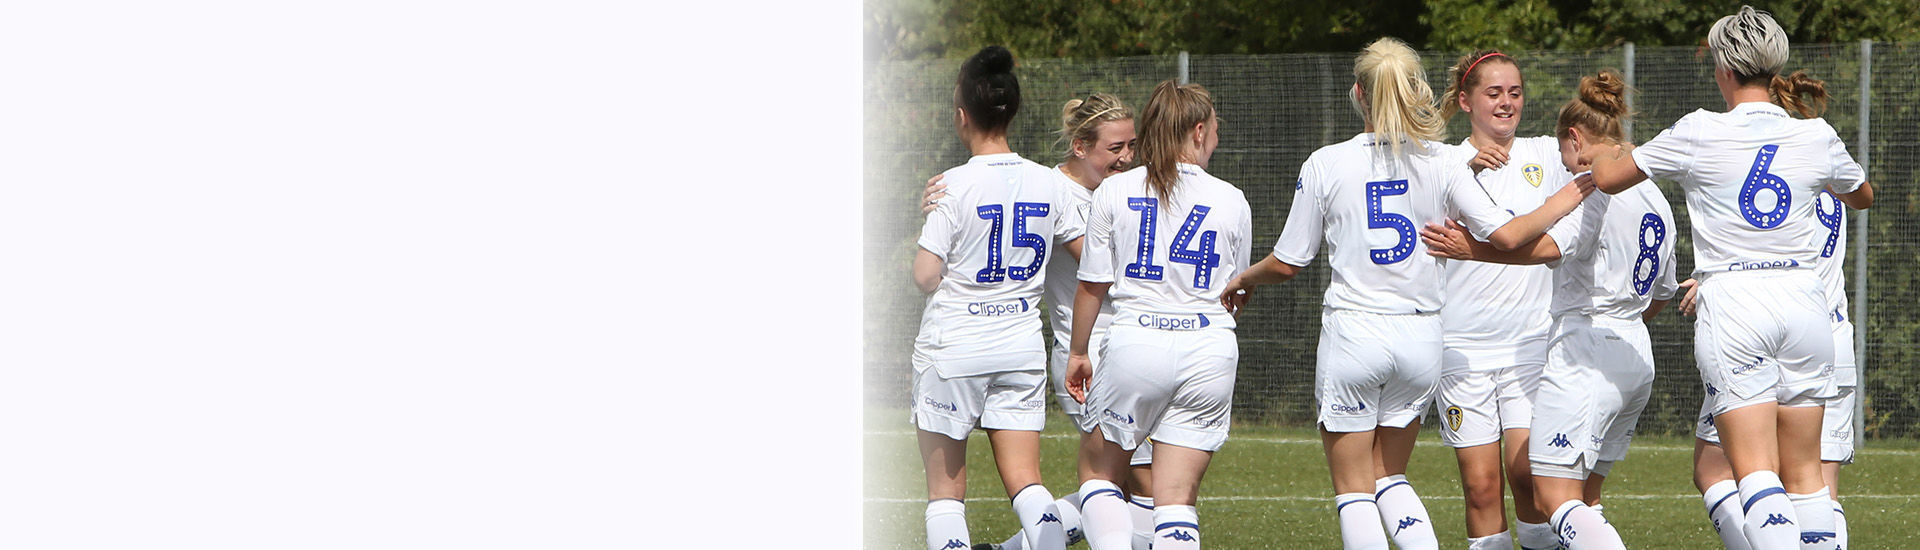 LADIES LEAPFROG CHESTER-LE-STREET AFTER 2-1 WIN